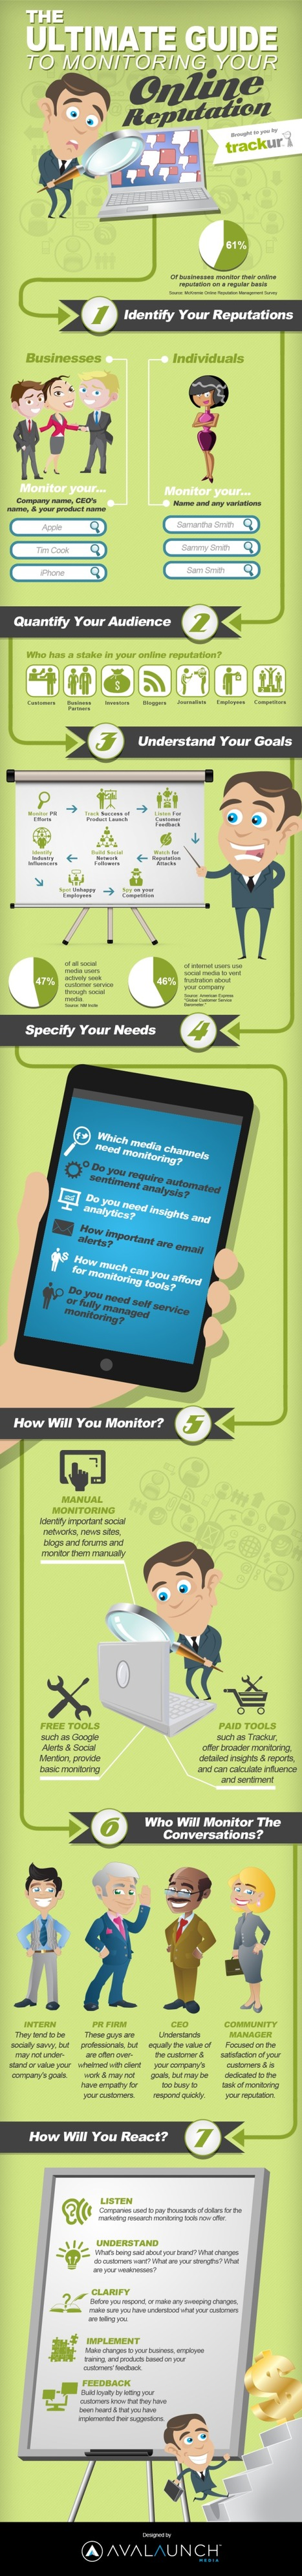 Ultimate Guide to Monitoring Your Online Reputation [INFOGRAPHIC] | Digital Marketing Land | Scoop.it